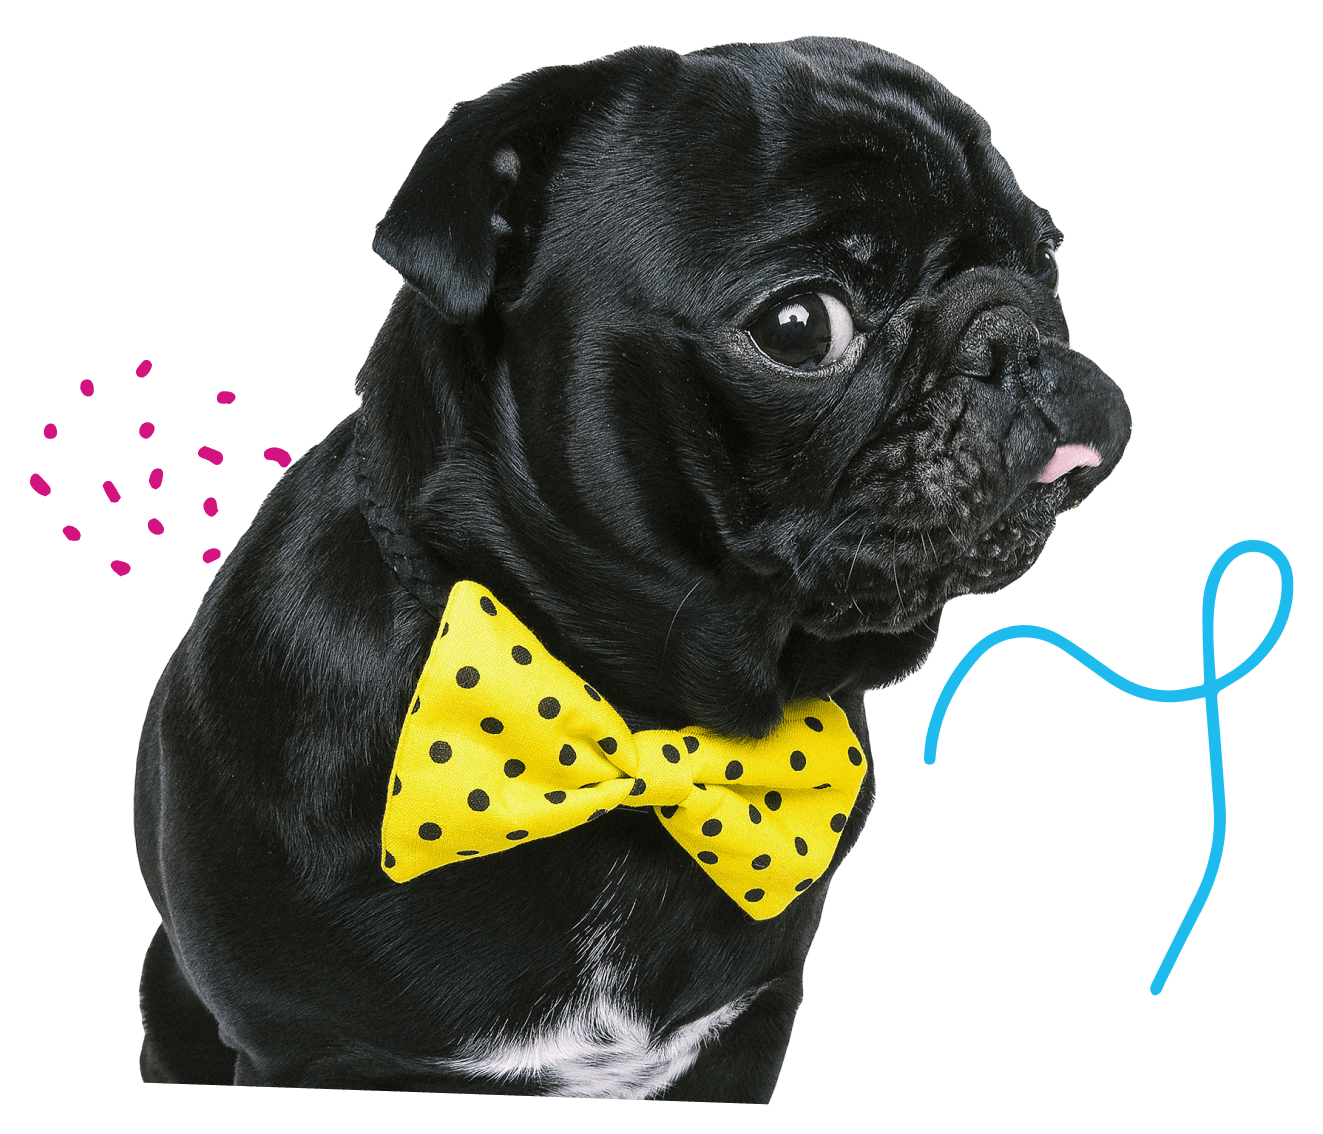 cute black french bulldog wearing a yellow bow tie with black polka dots sticking out tongue